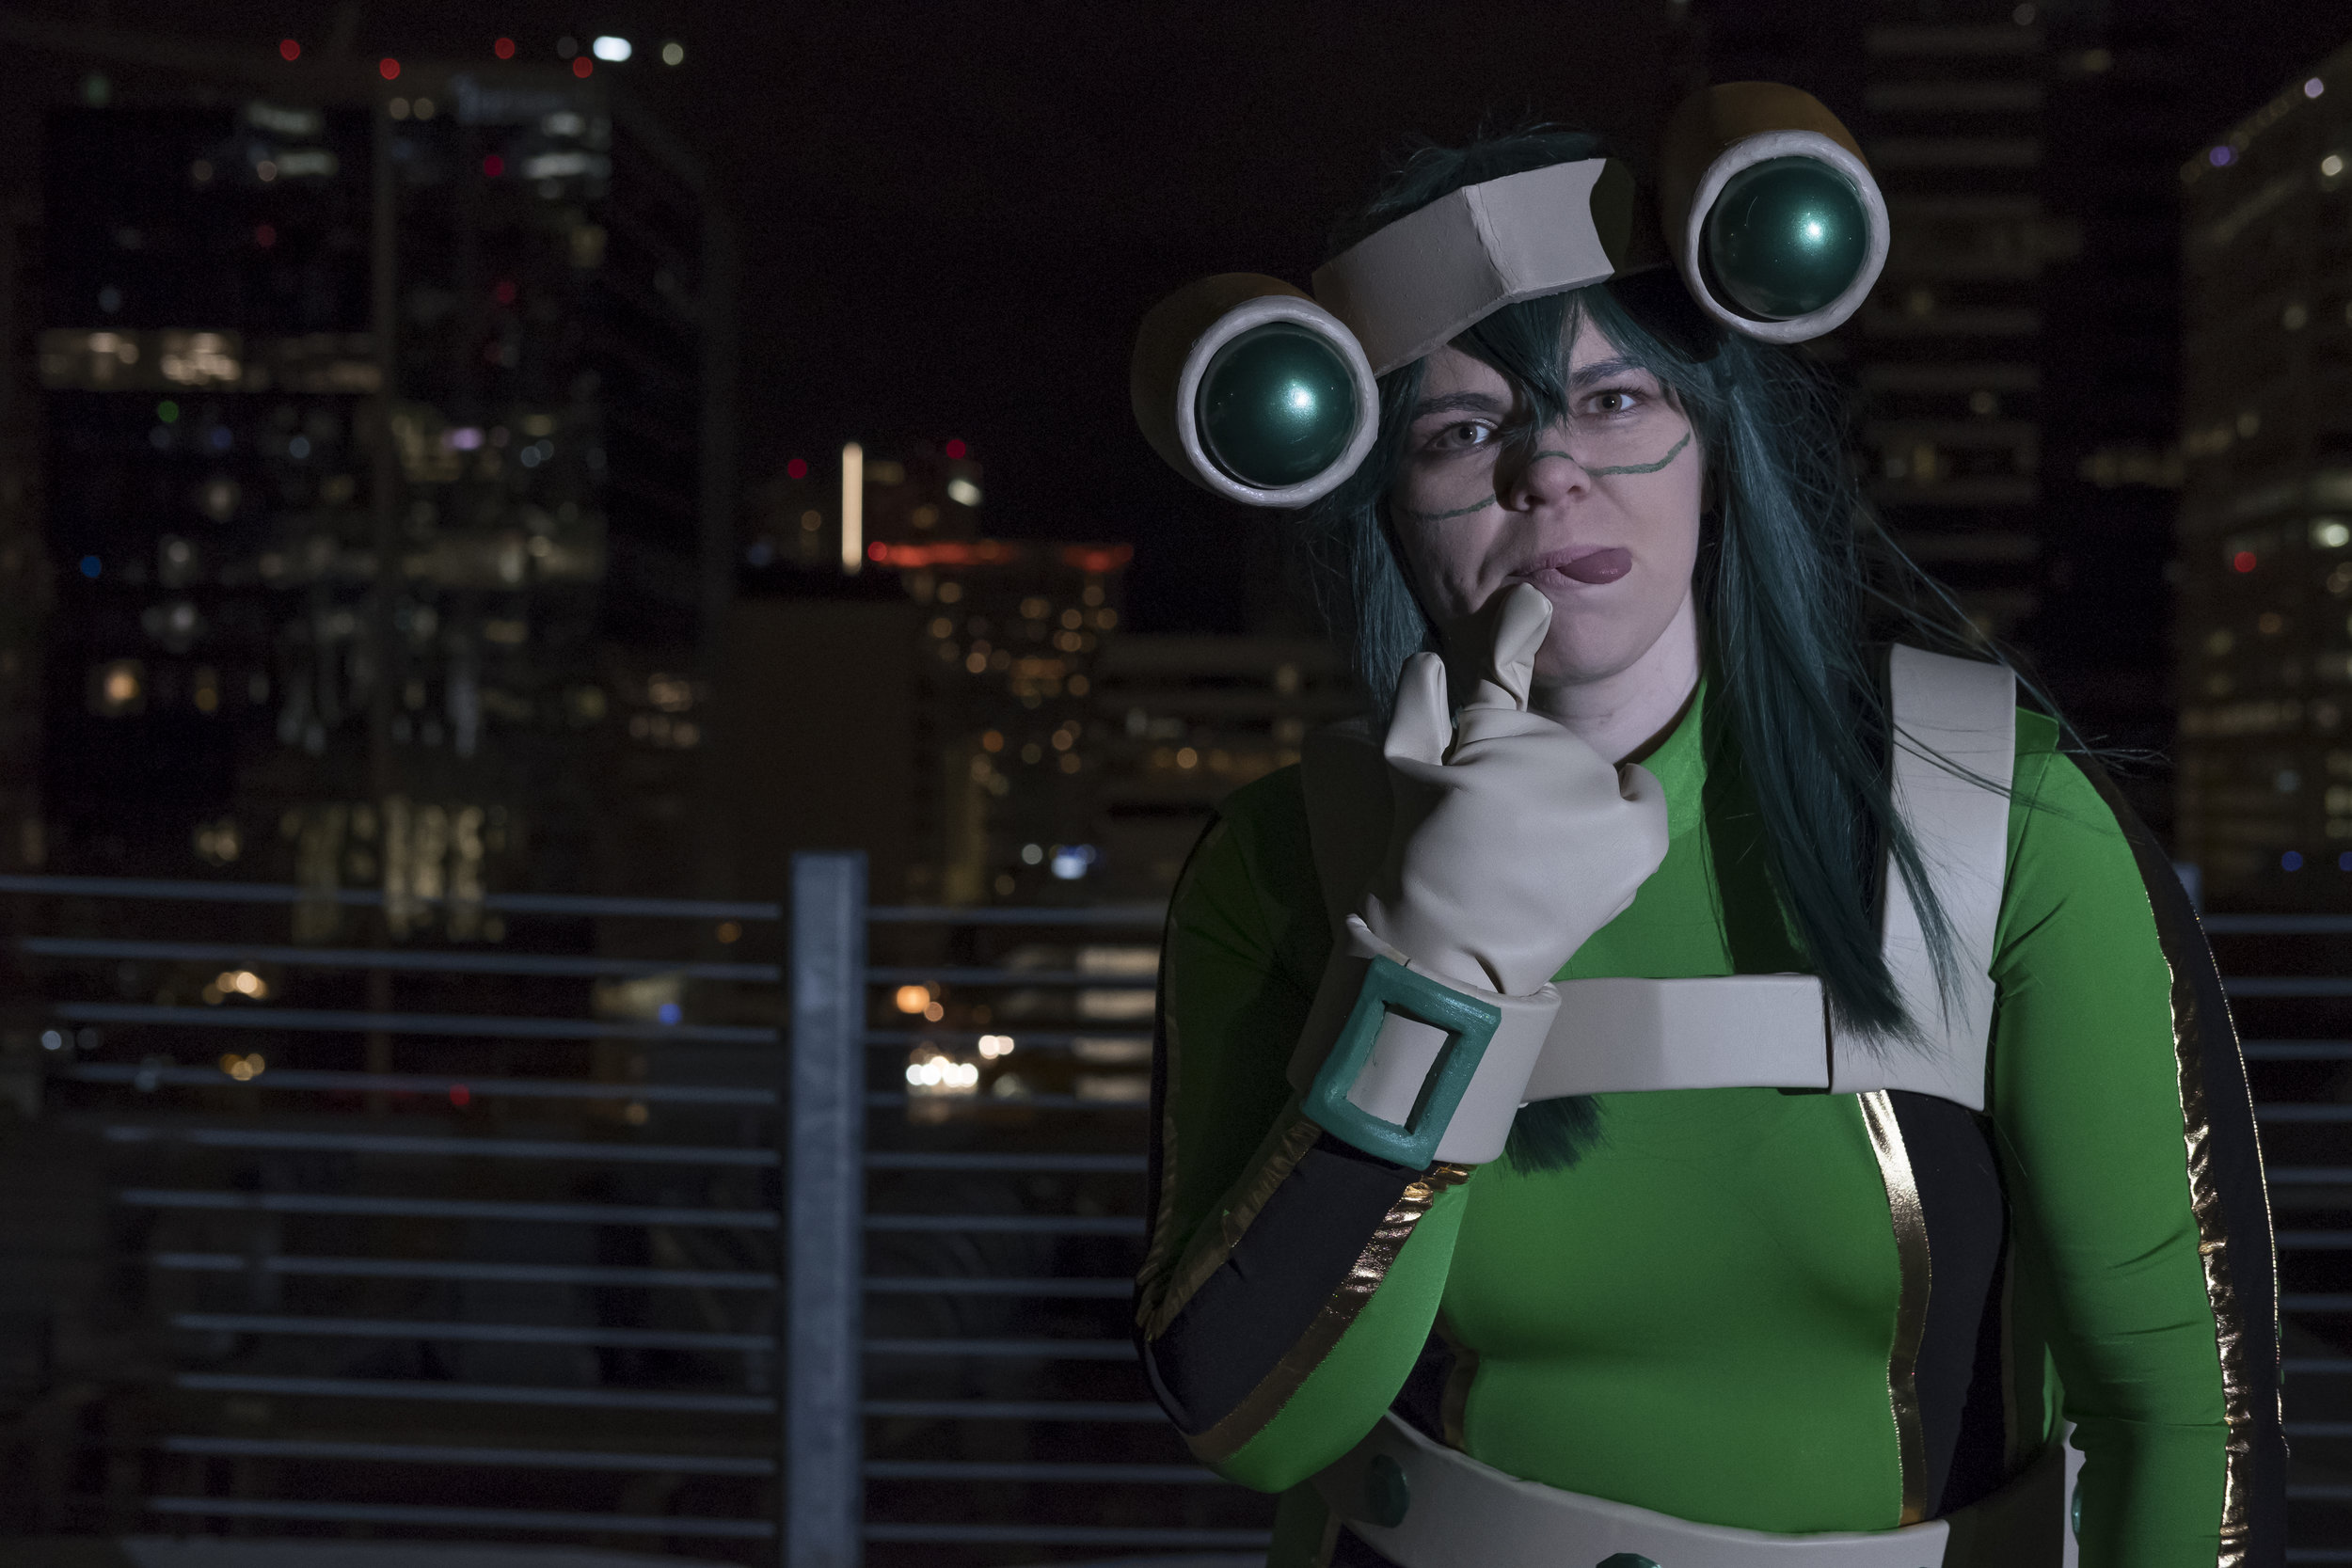 Tacocat Cosplay in Froppy cosplay in downtown Austin